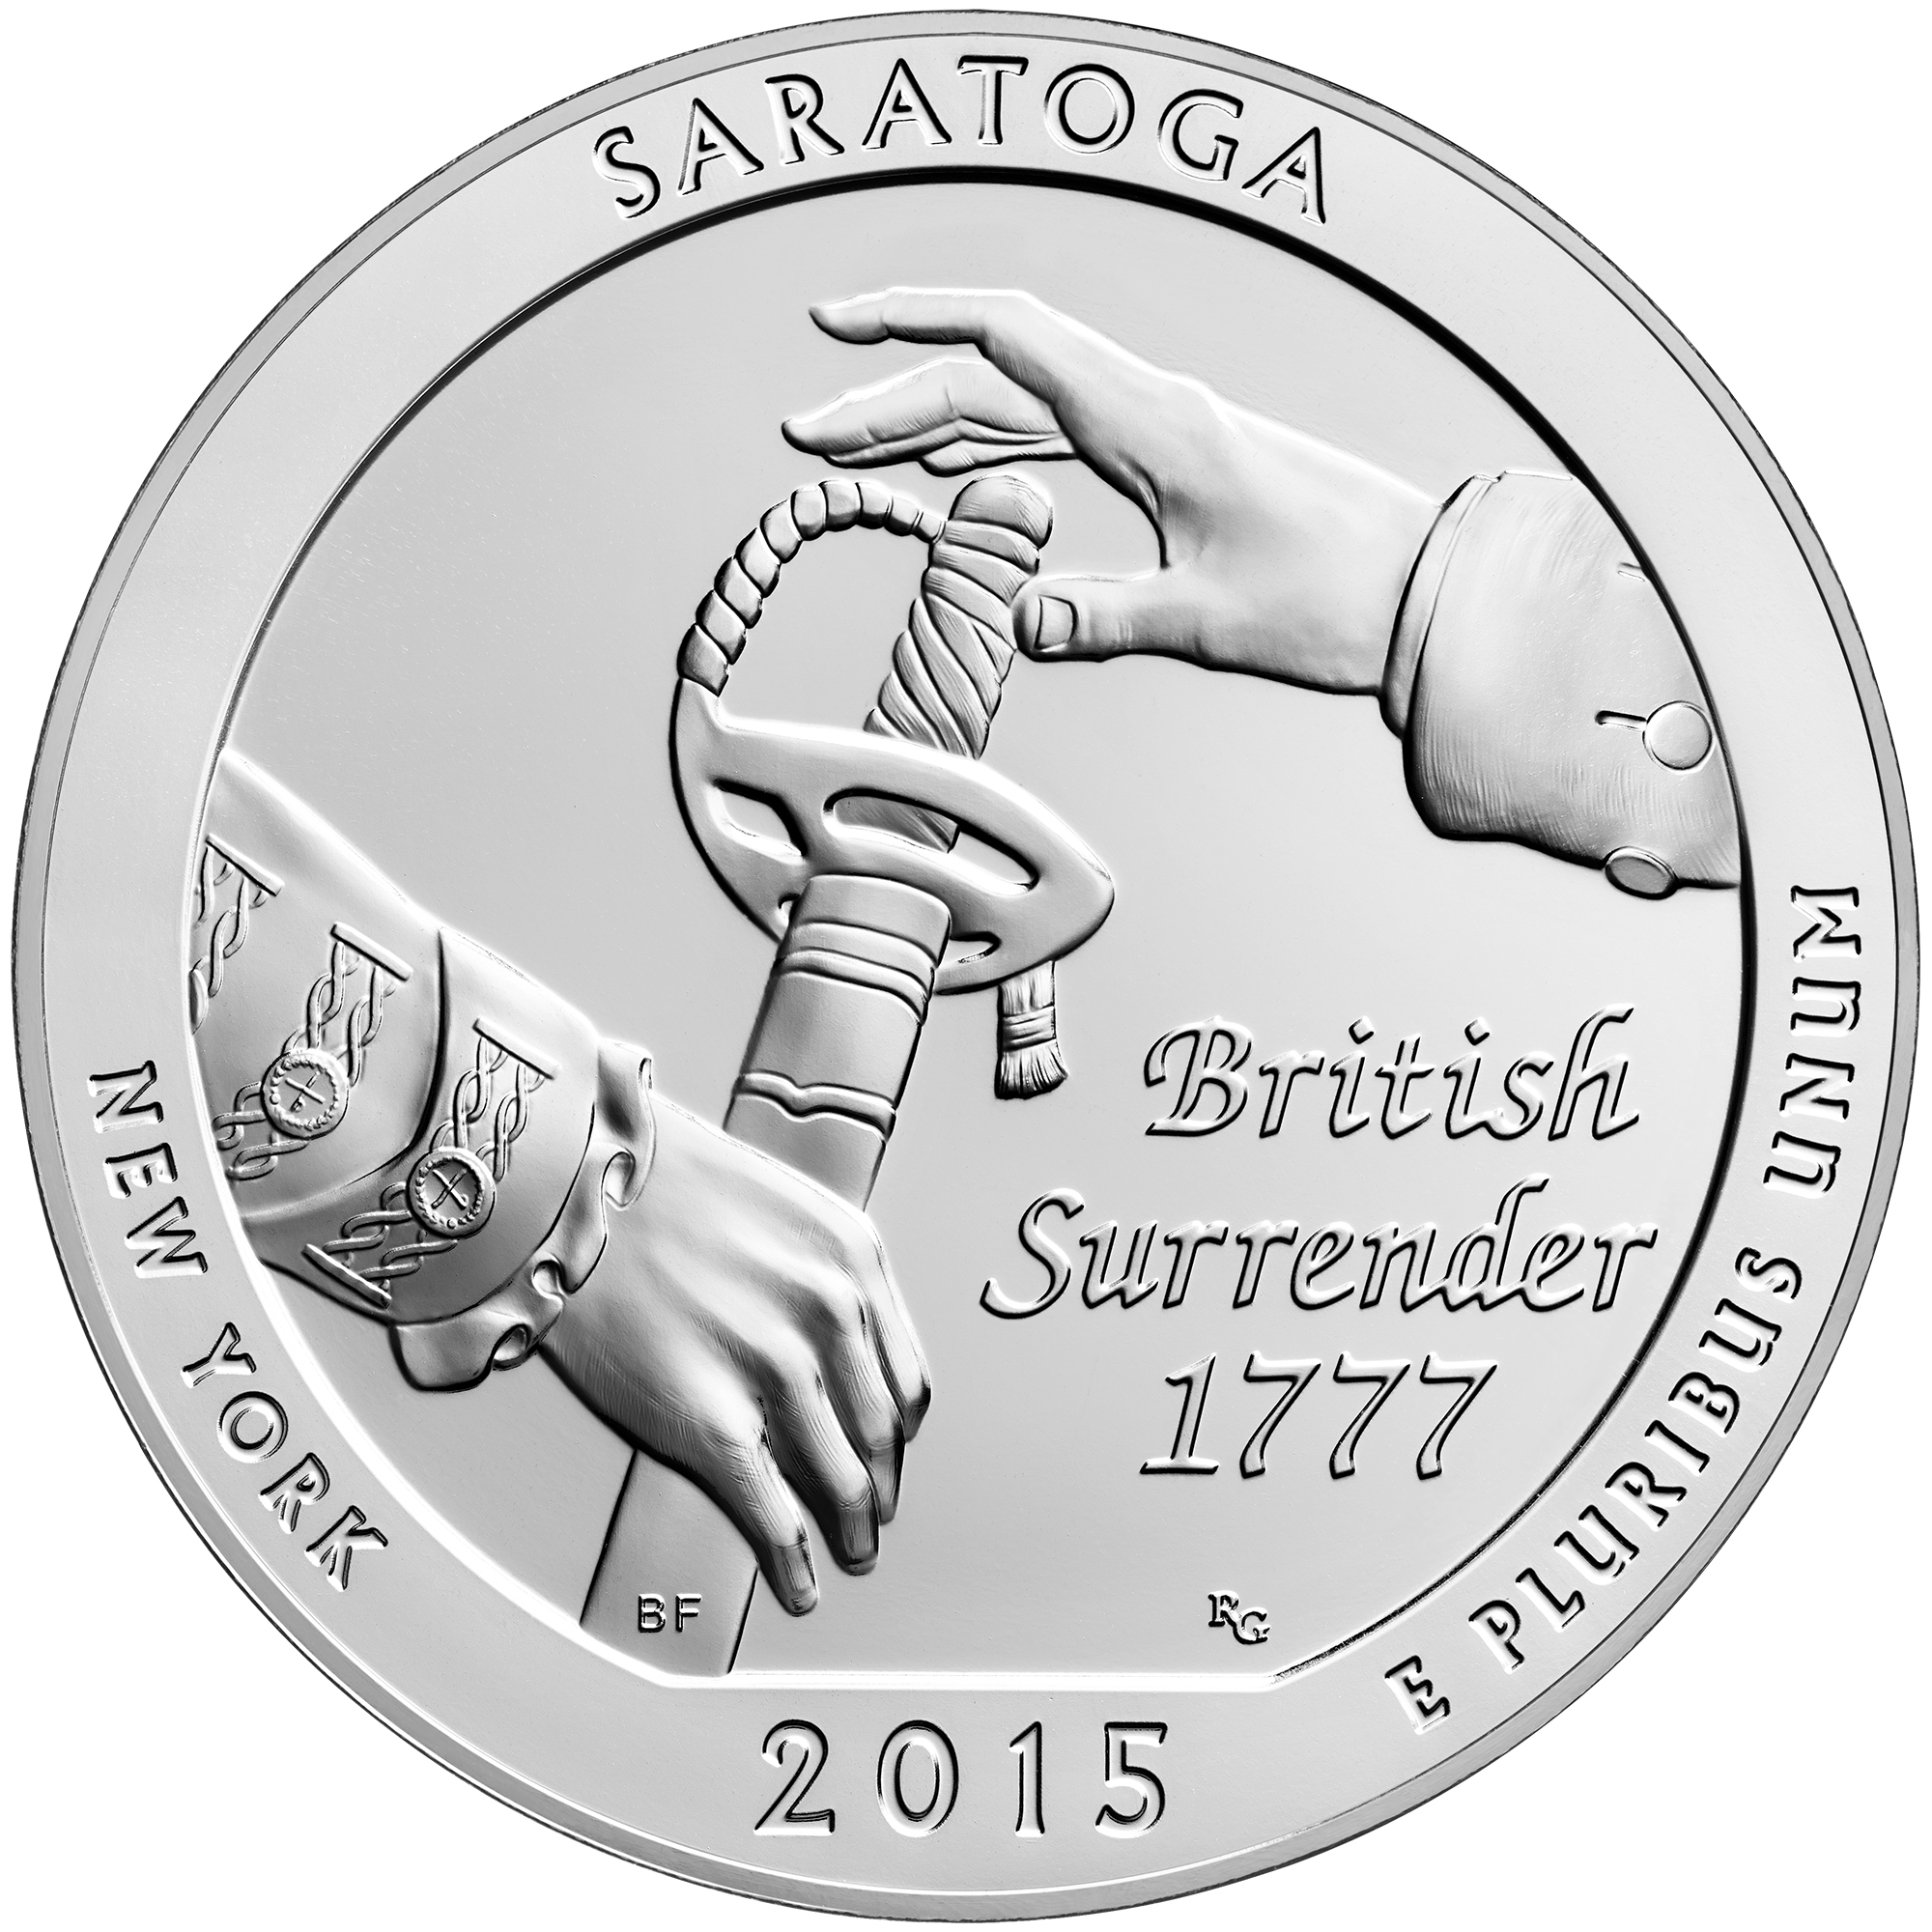 2015 America The Beautiful Quarters Five Ounce Silver Bullion Coin Saratoga New York Reverse